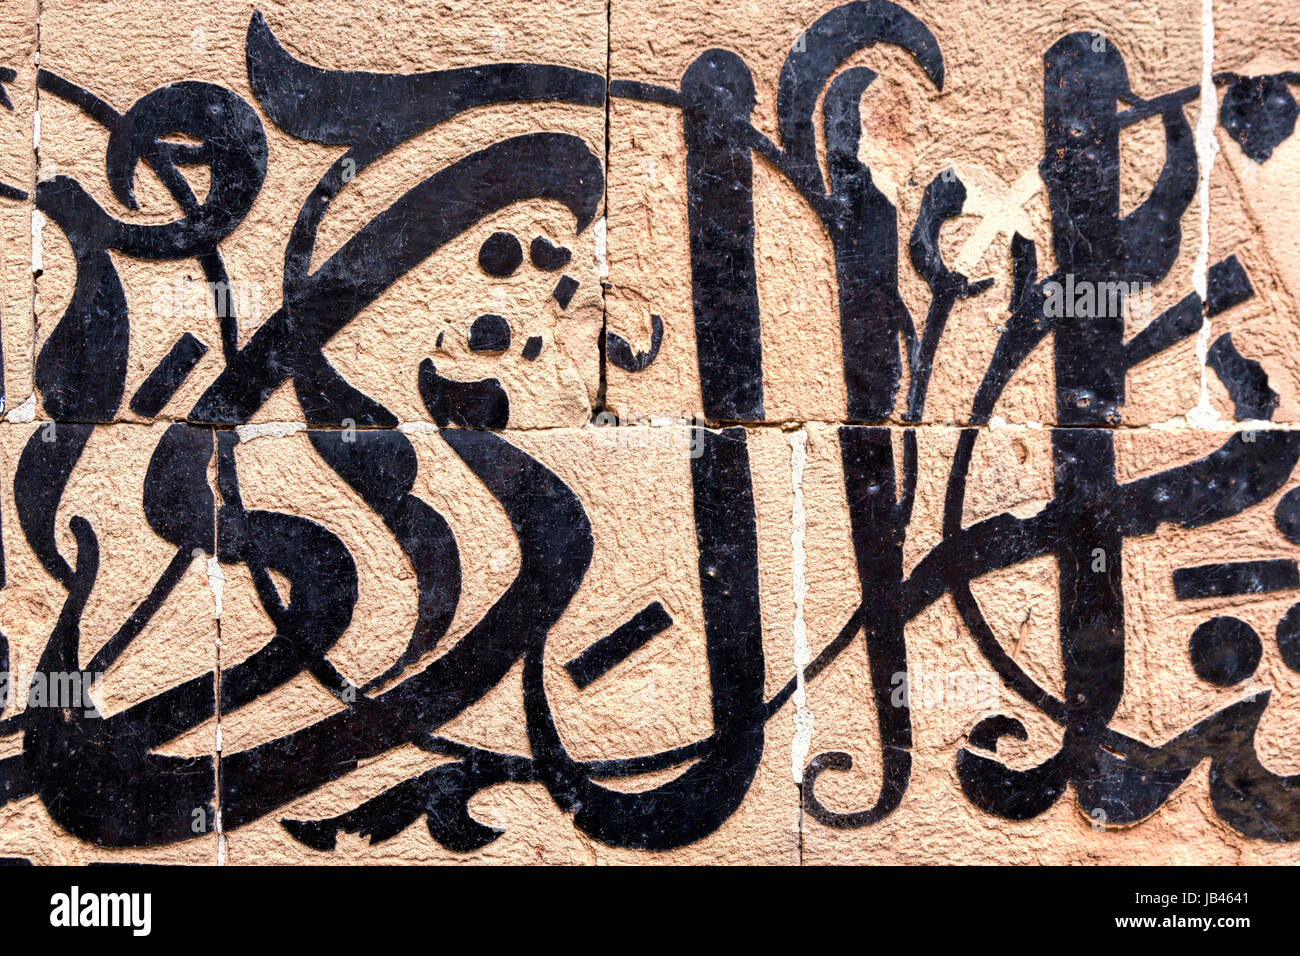 Deko Marokko Arabische Kalligrafie Marokko Stock Photo 144536785 Alamy